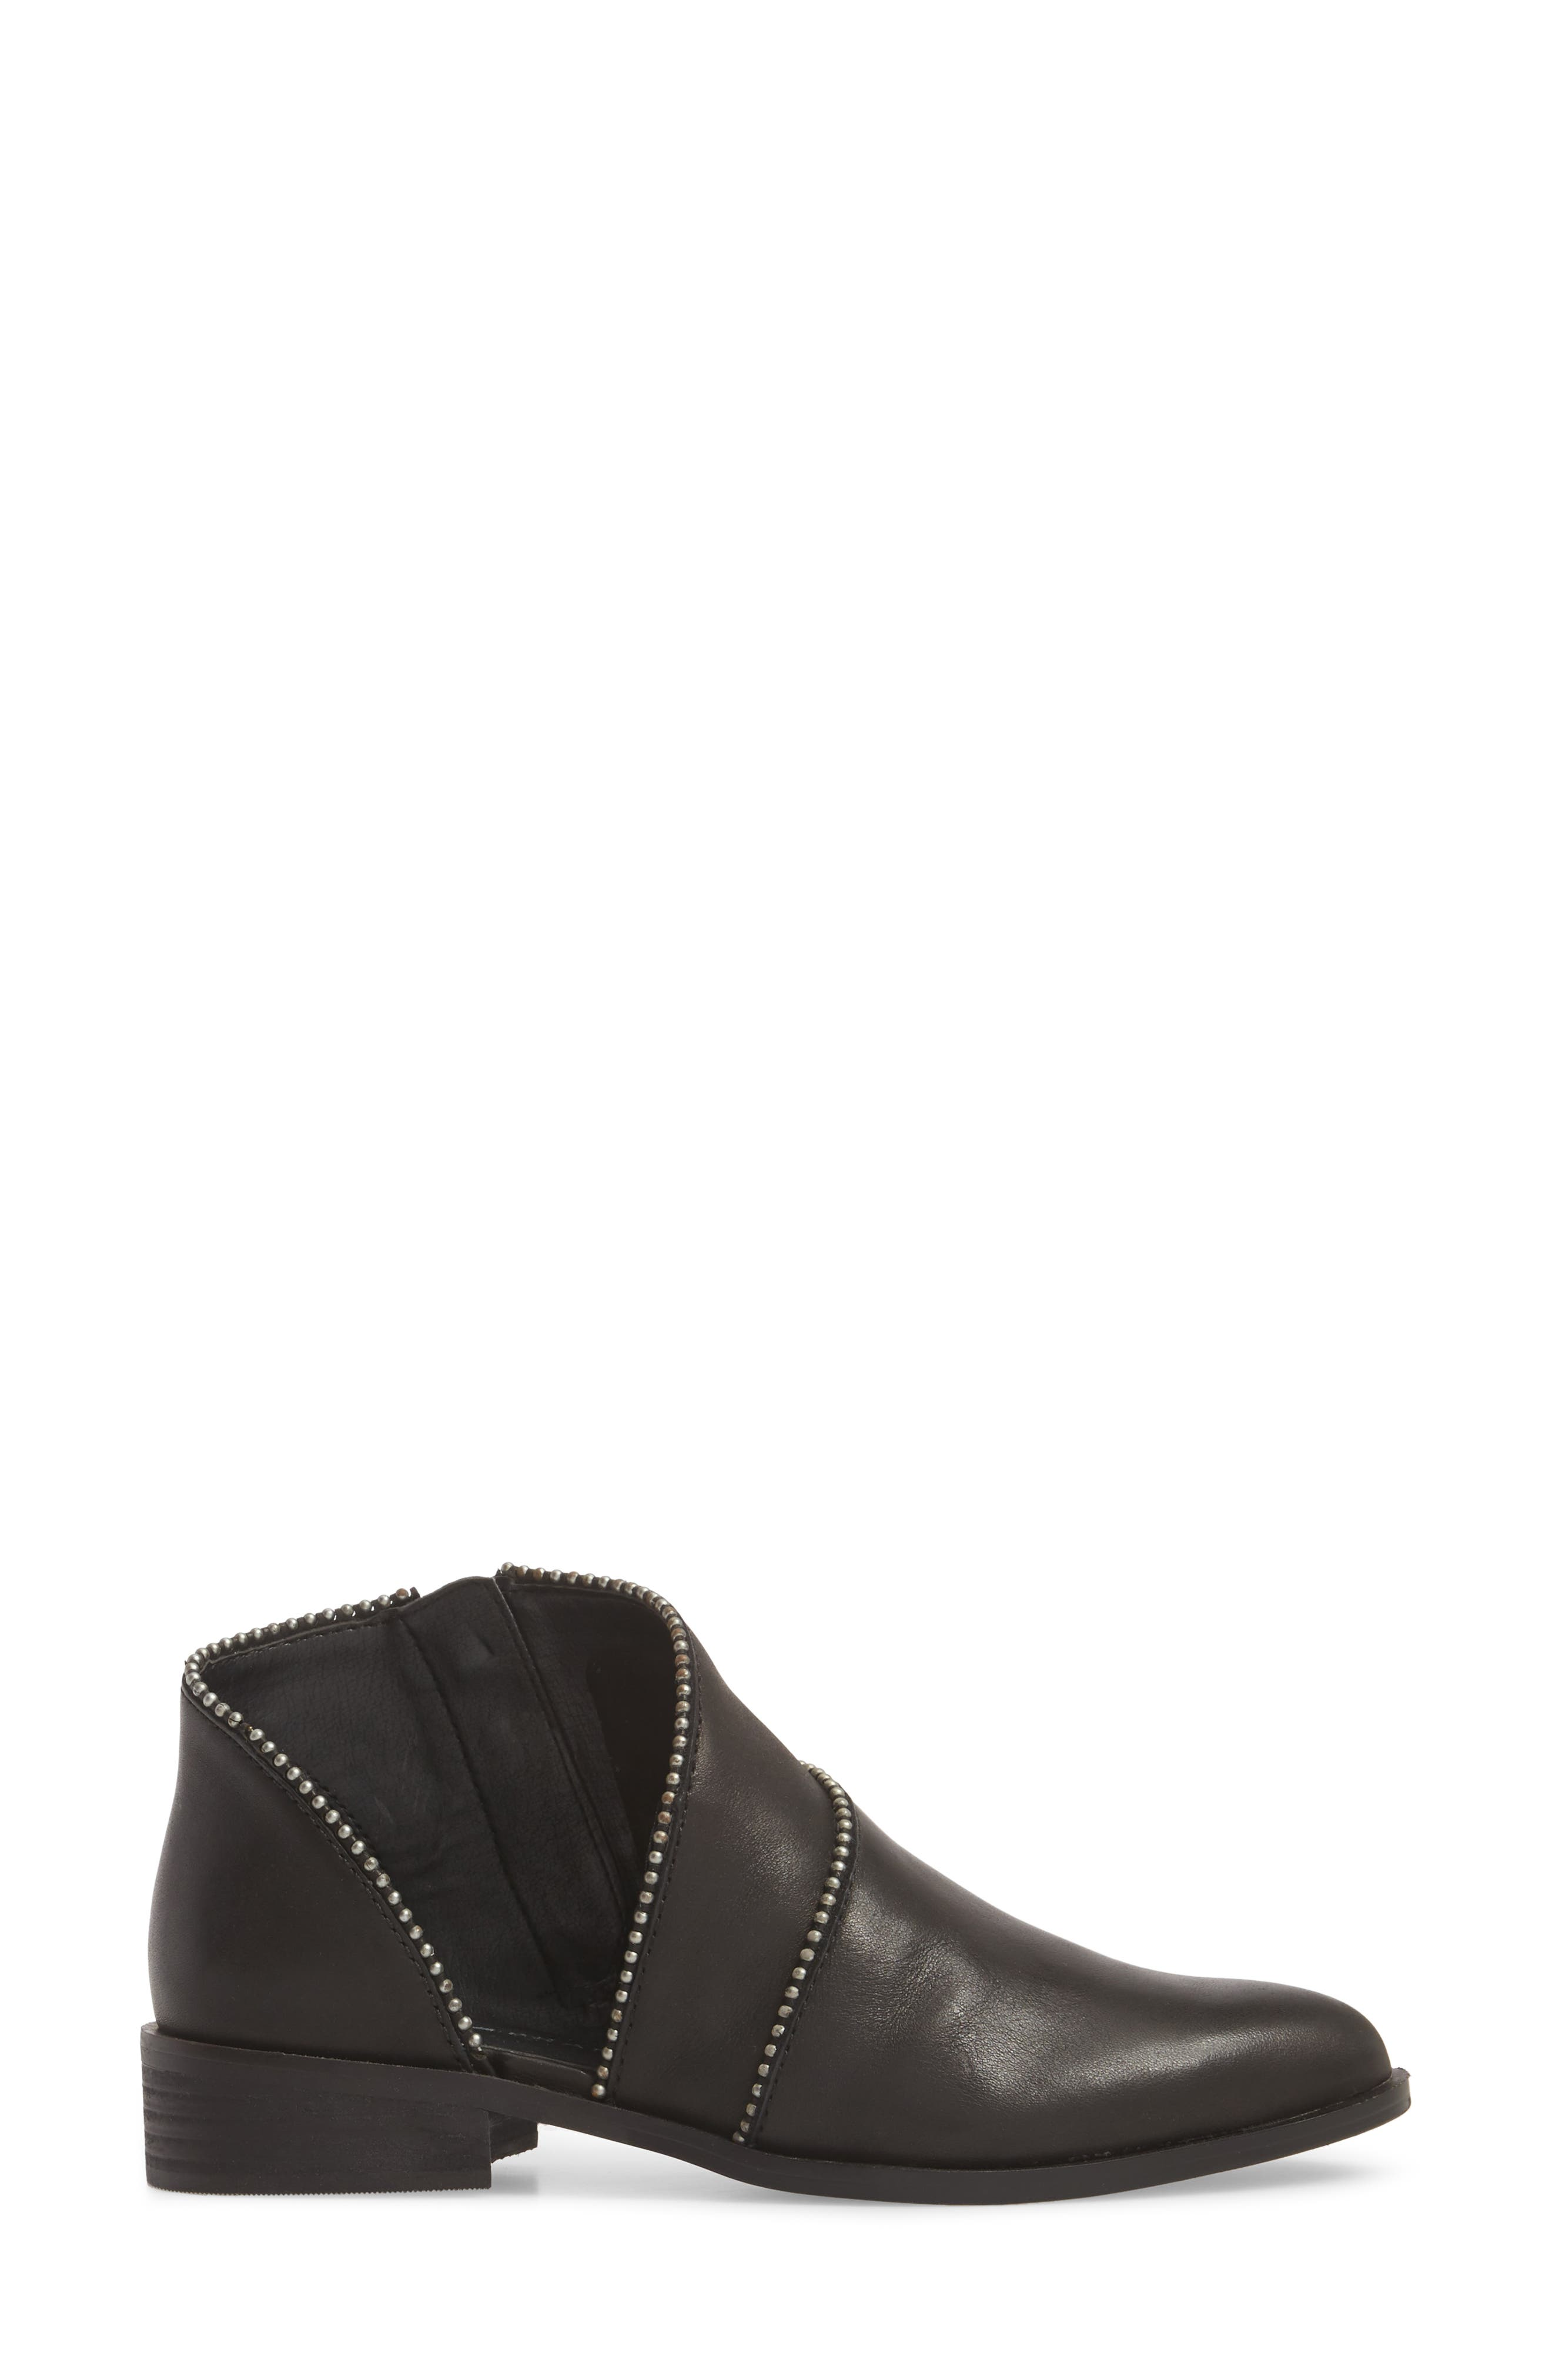 Prucella Bootie,                             Alternate thumbnail 3, color,                             BLACK LEATHER